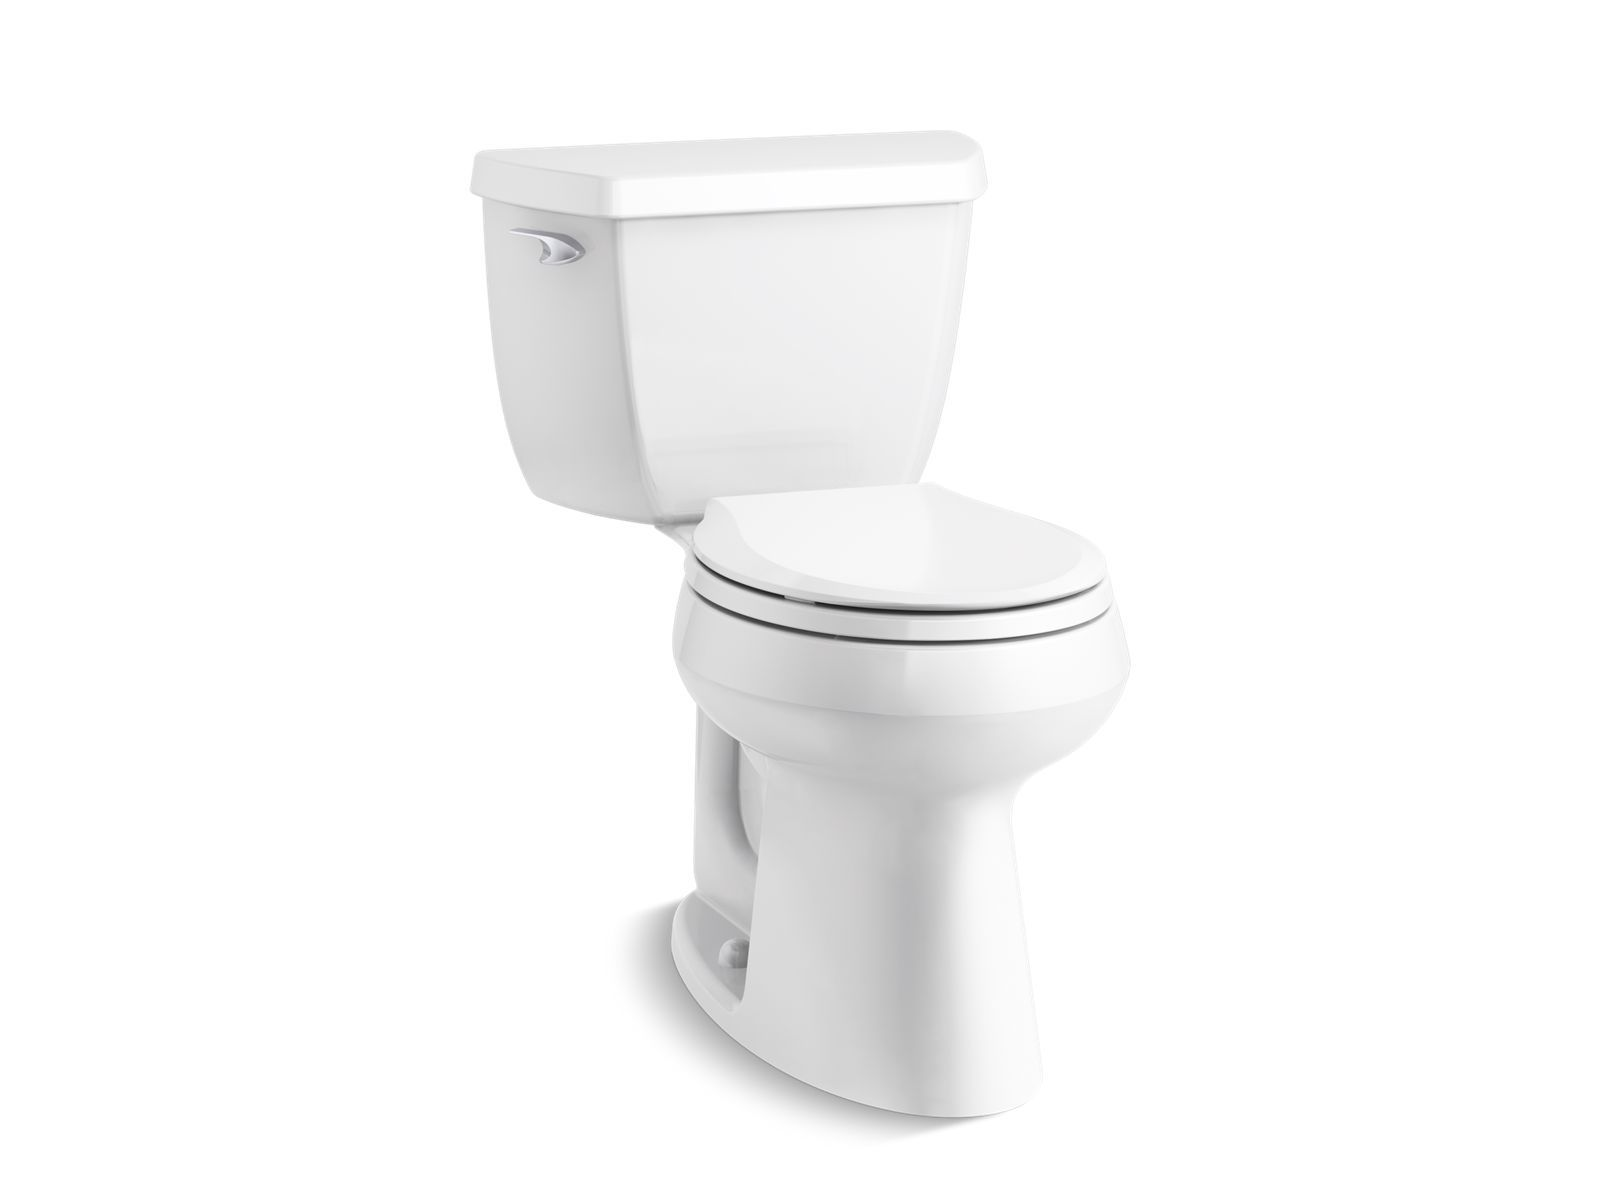 Highline Classic Comfort Height Two Piece Round Front 1 28 Gpf Toilet With Class Five Flush Technology And Left Hand Trip Lever K 5296 Kohler Kohler Toilet Flush Bathroom Update